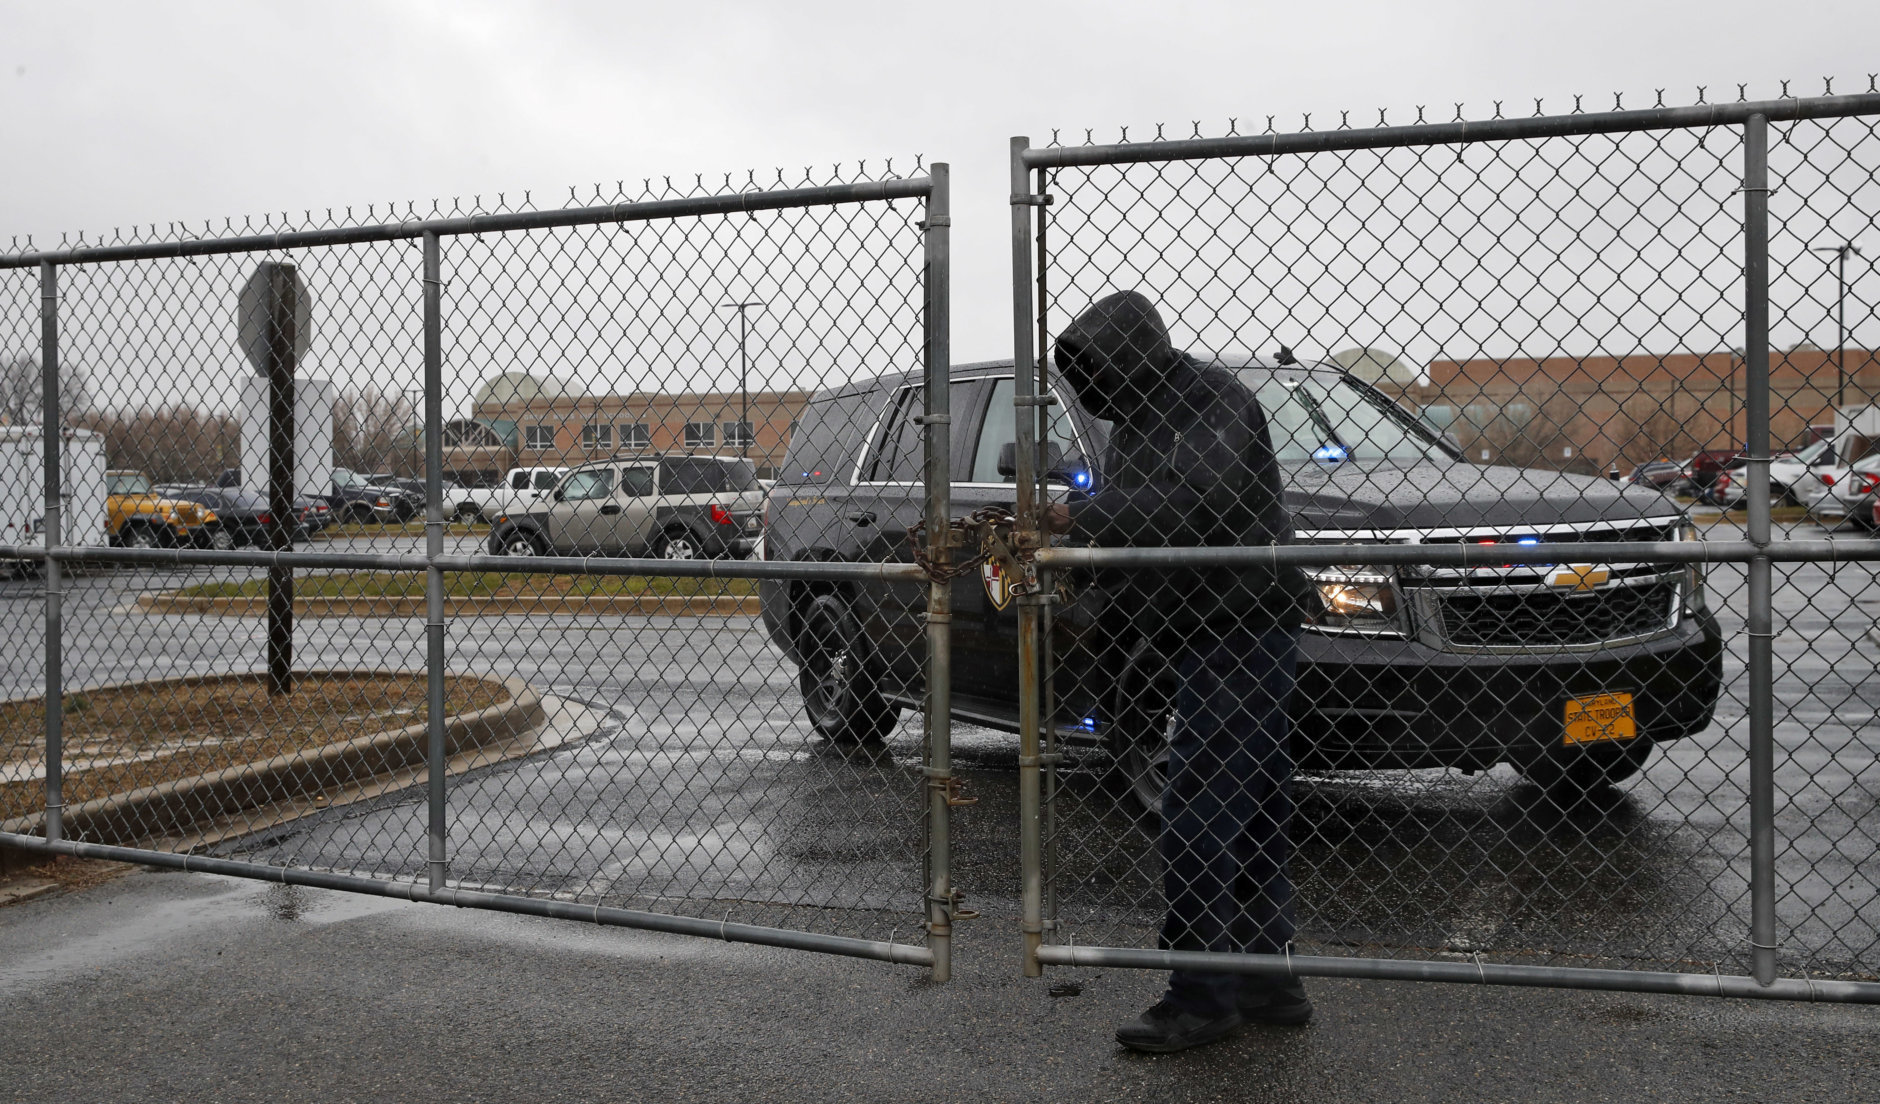 A man checks a locked gate to the parking lot of Great Mills High School, the scene of a shooting, Tuesday, March 20, 2018, in Great Mills. A student with a handgun shot two classmates inside the school before he was fatally wounded during a confrontation with a school resource officer, a sheriff said.  (AP Photo/Alex Brandon)